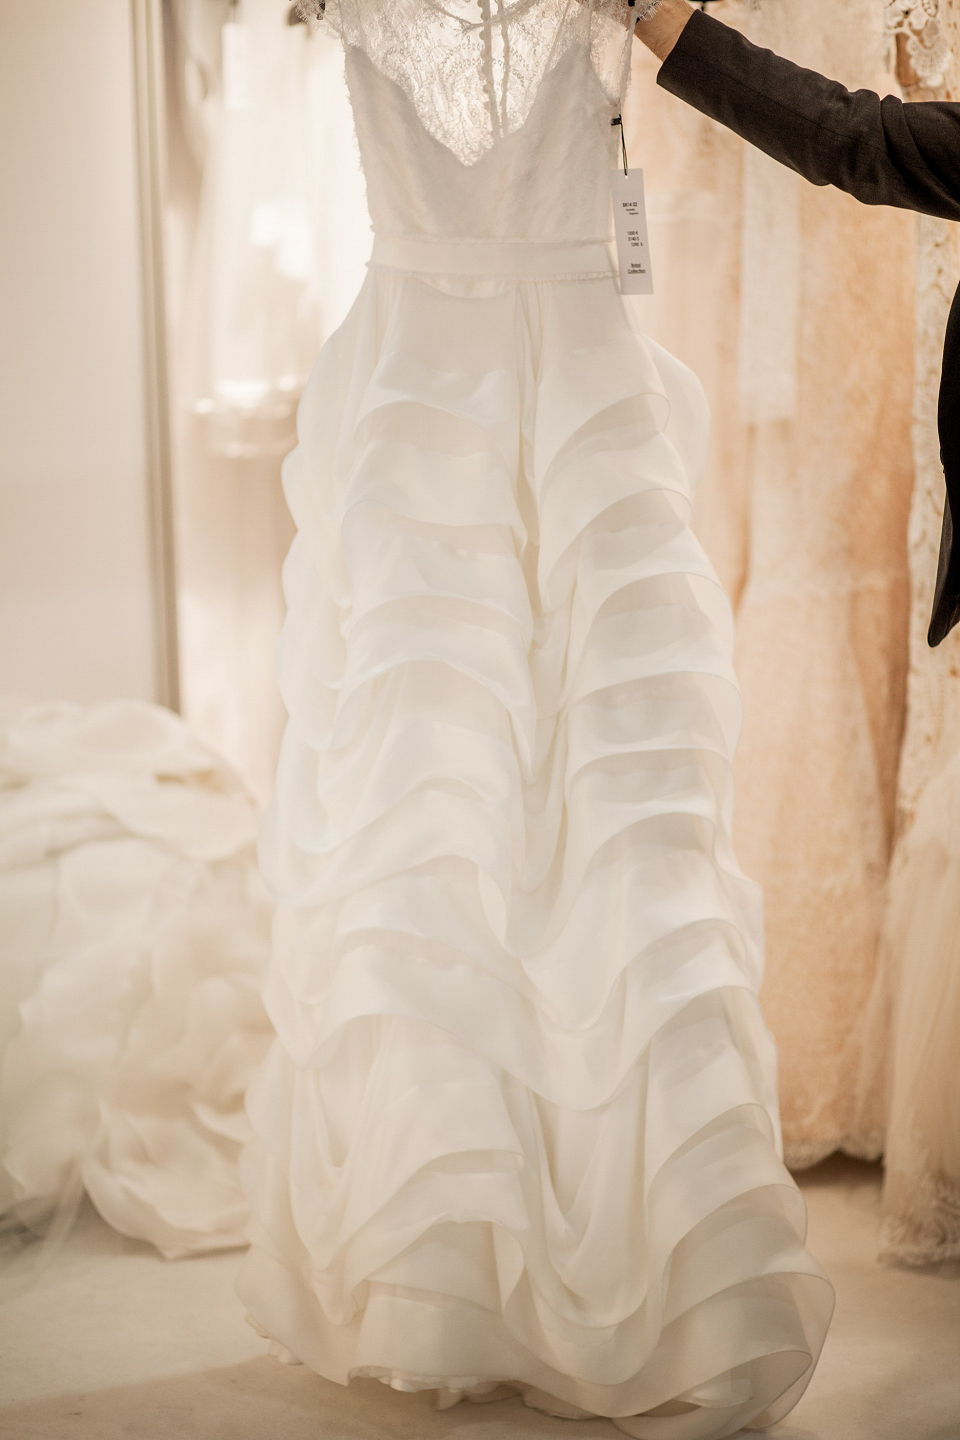 Christos Costarellos wedding dresses at The White Gallery, London, April 2014